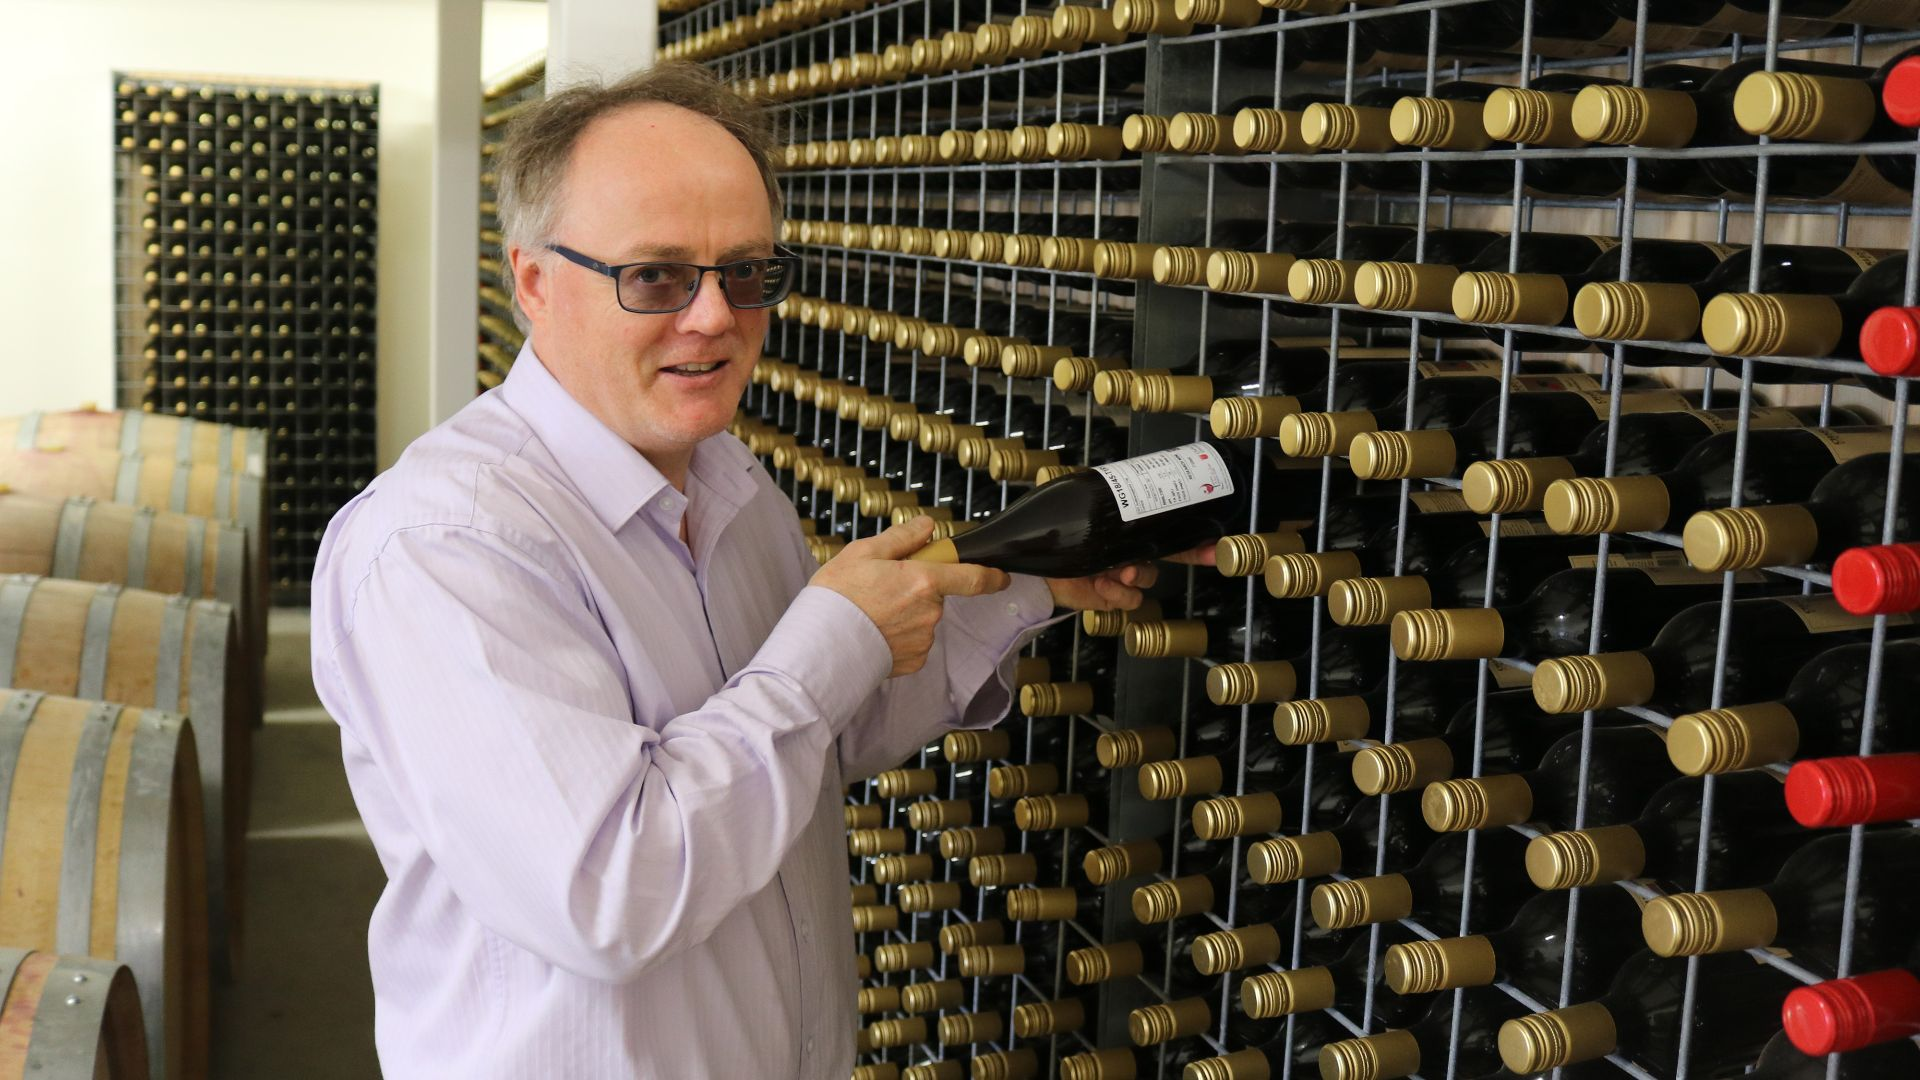 Vineyard to bottle: wine research to be showcased online